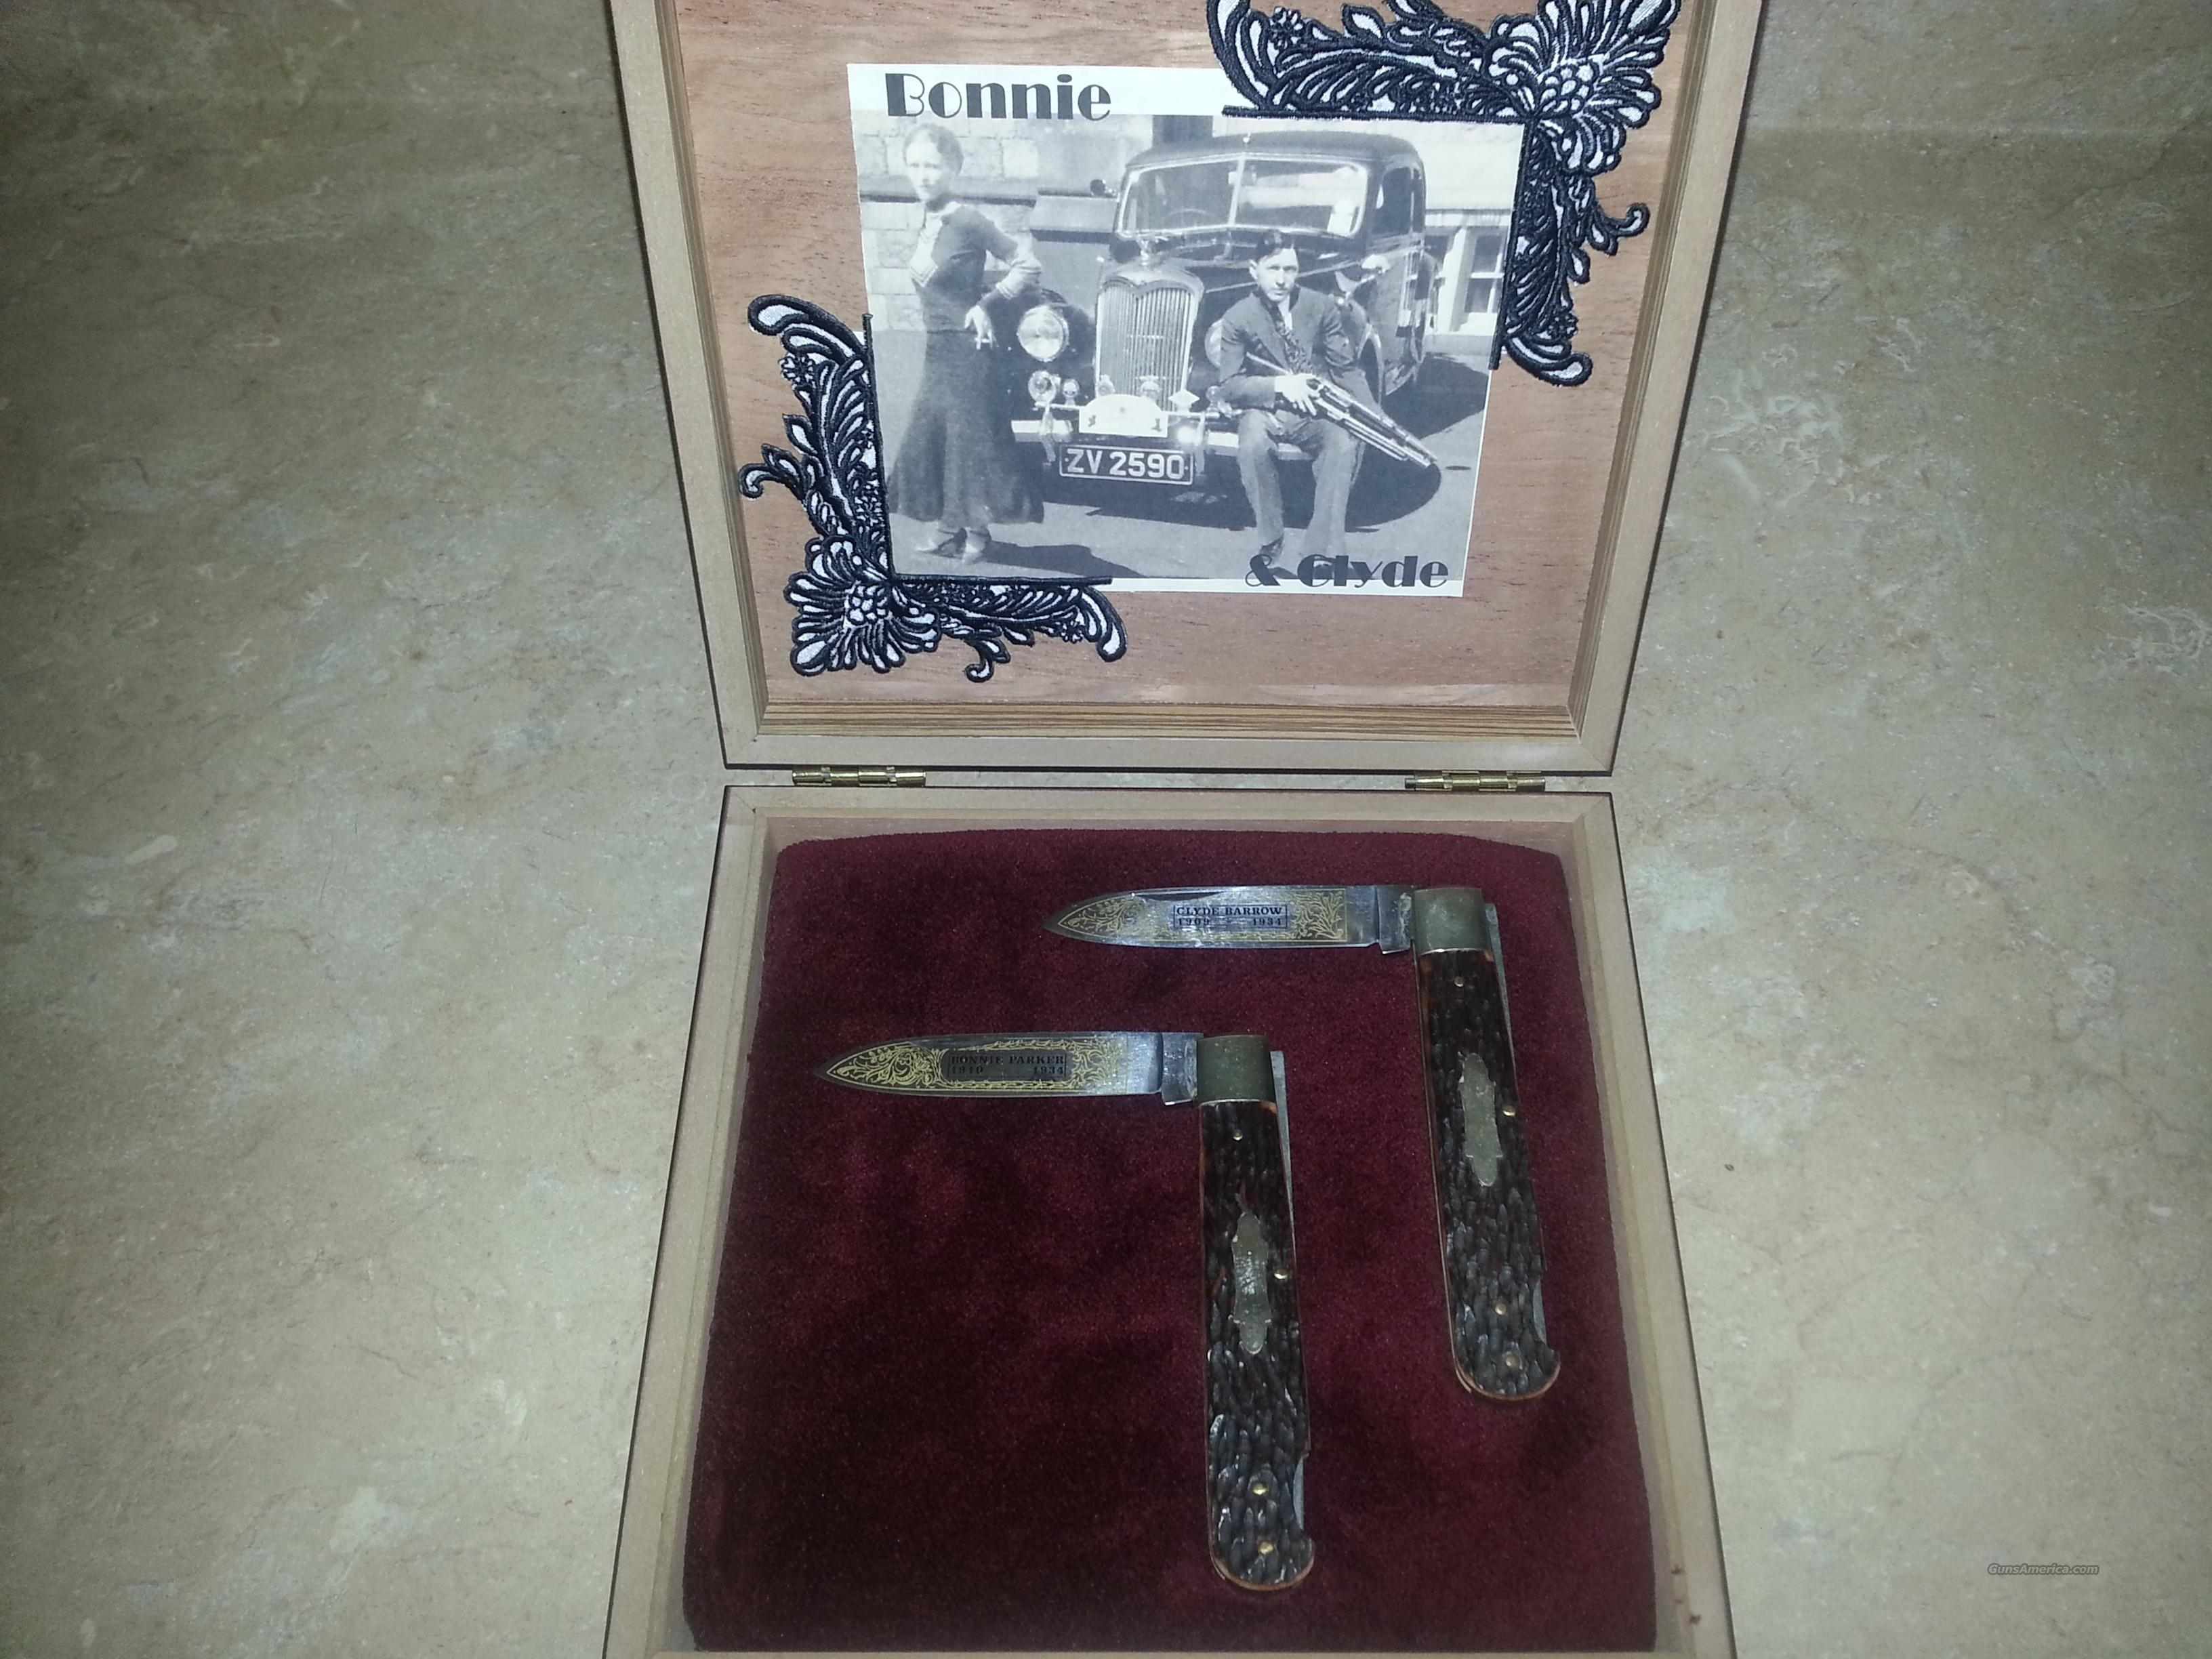 Bonnie And Clyde Commemorative Knives For Sale